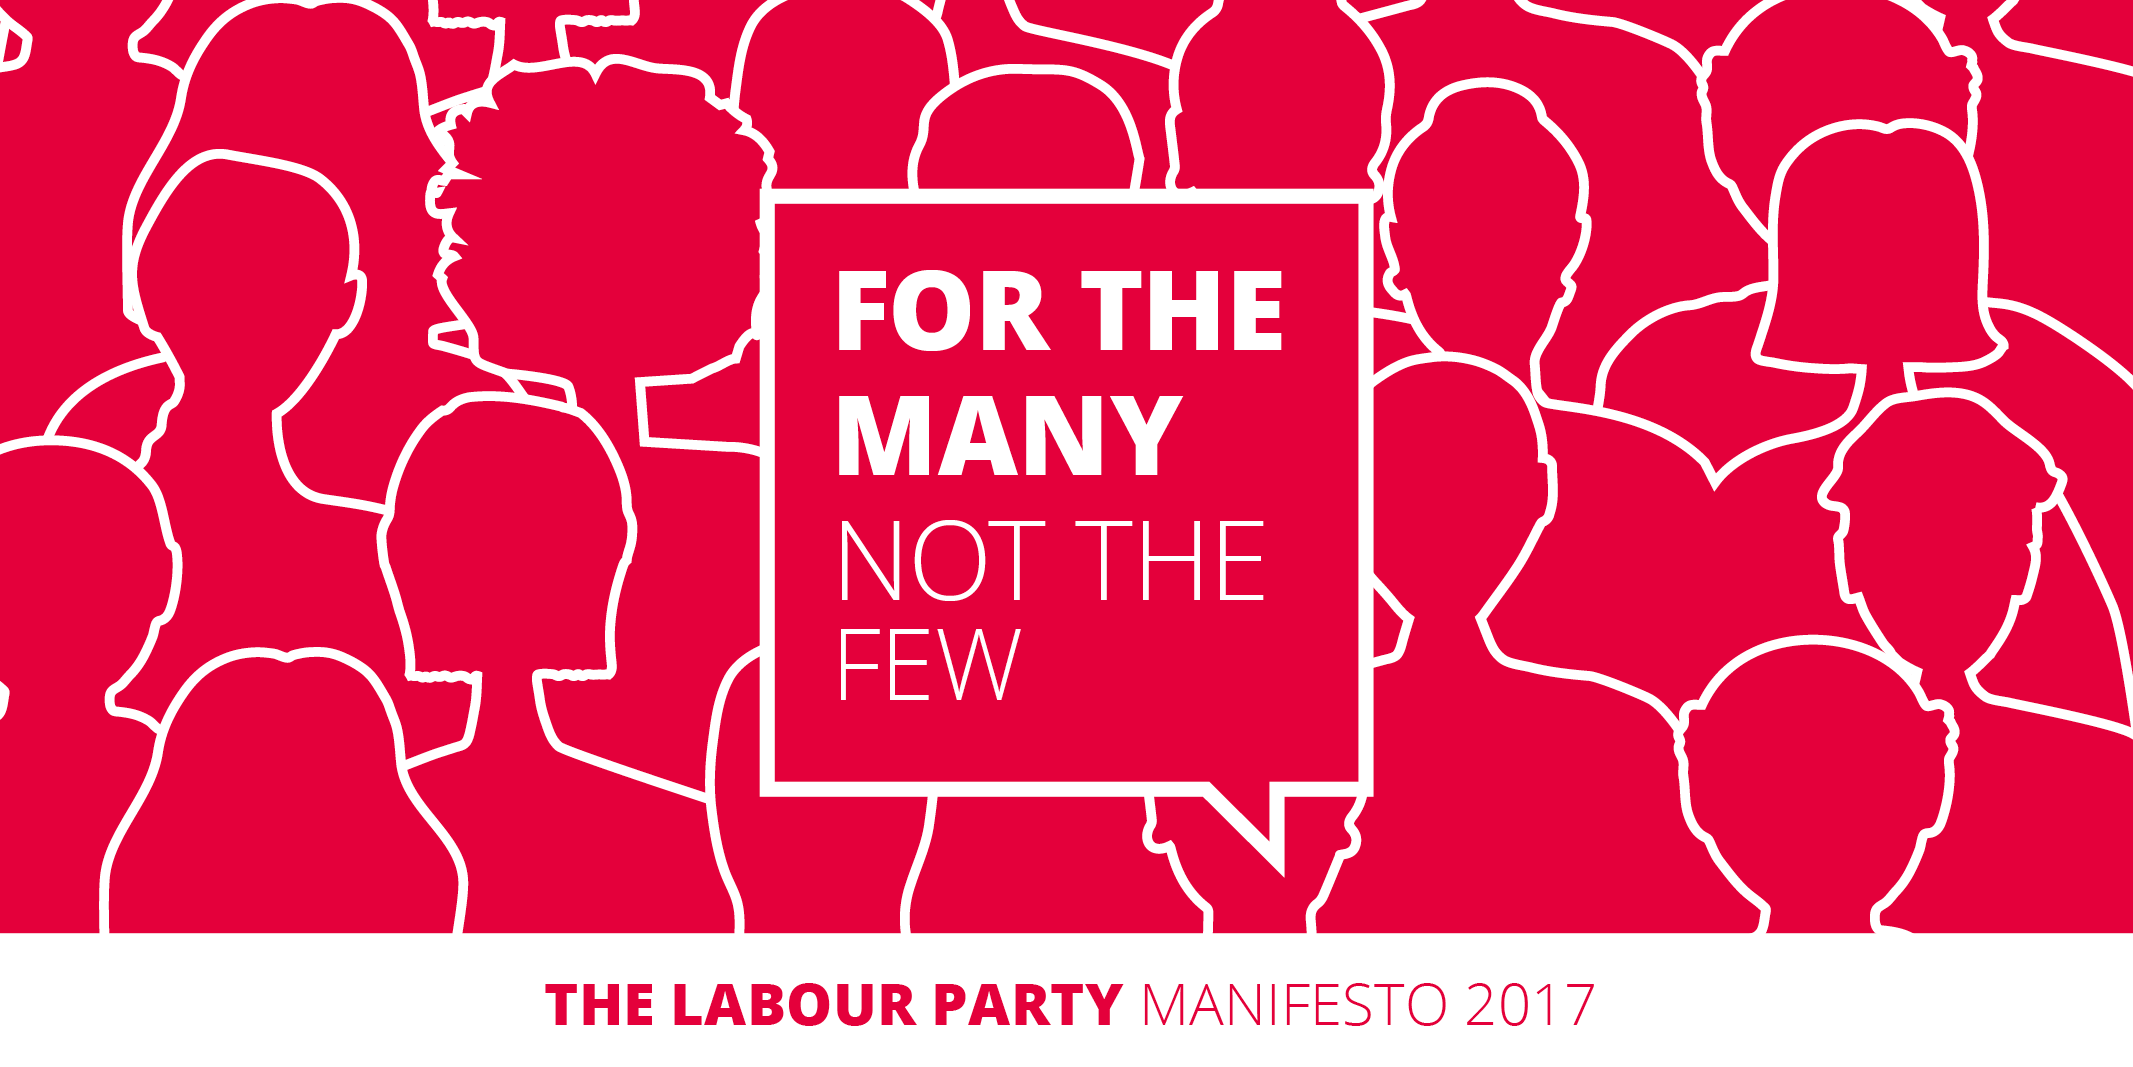 uk labour party Sure the remain side in the eu referendum suffered a narrow defeat, but the labour party has lost in much bigger defeats and didn't abandon its policies, so that's not reason enough.